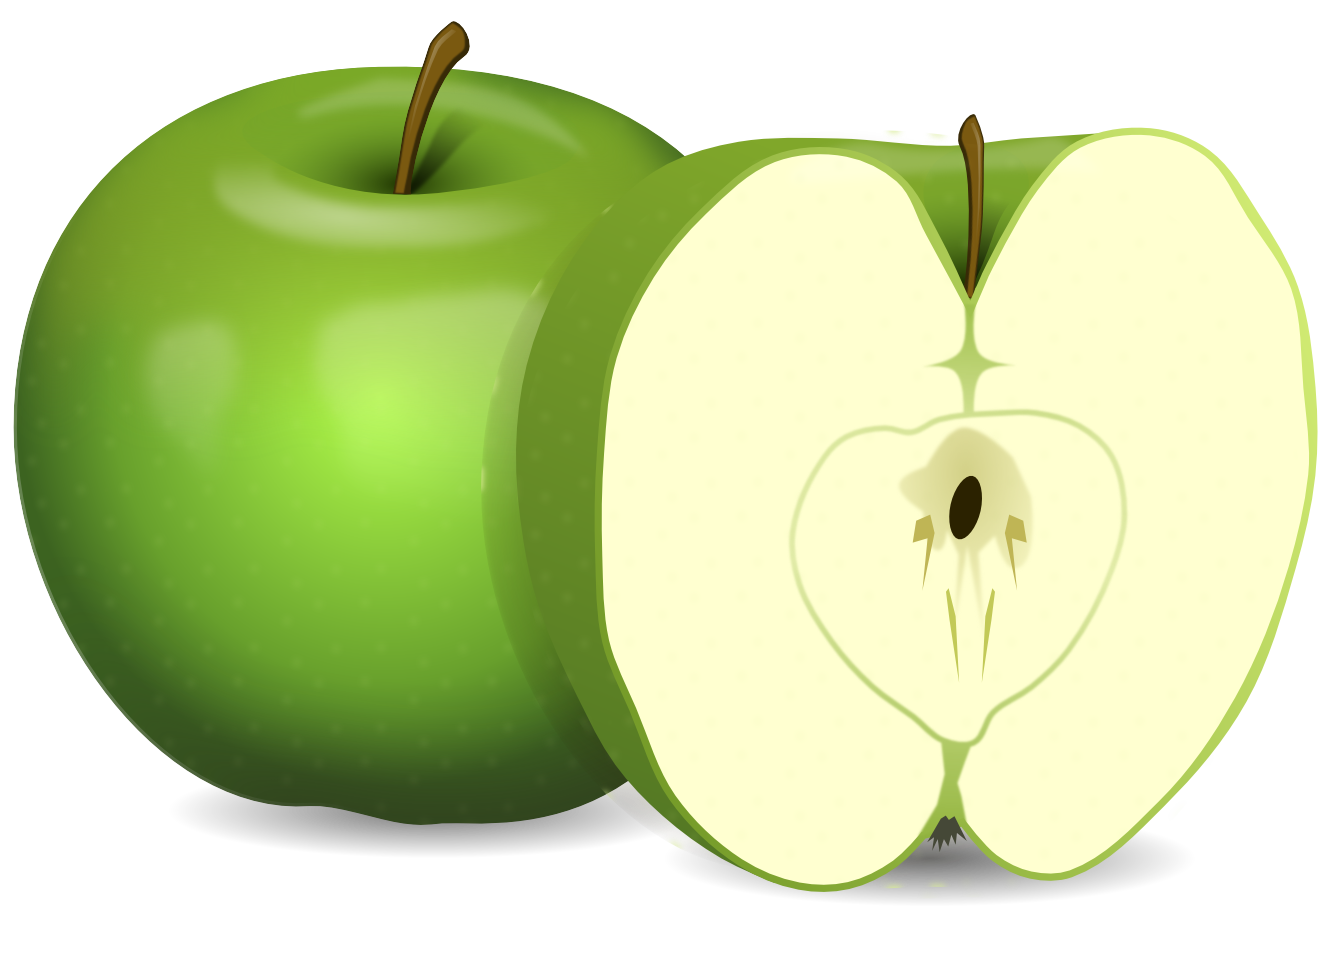 Yellow apples clipart png. Red apple image purepng